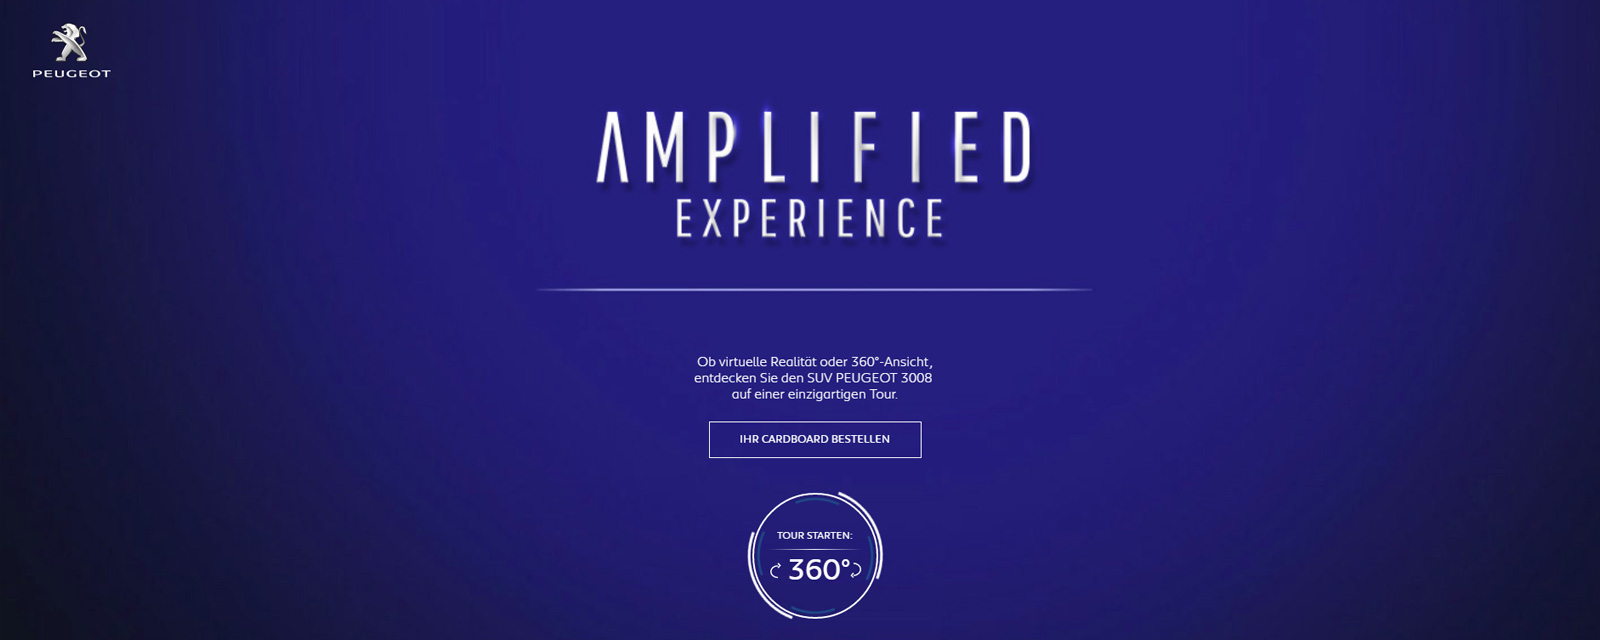 Link zu Amplified Experience bei PEUGEOT